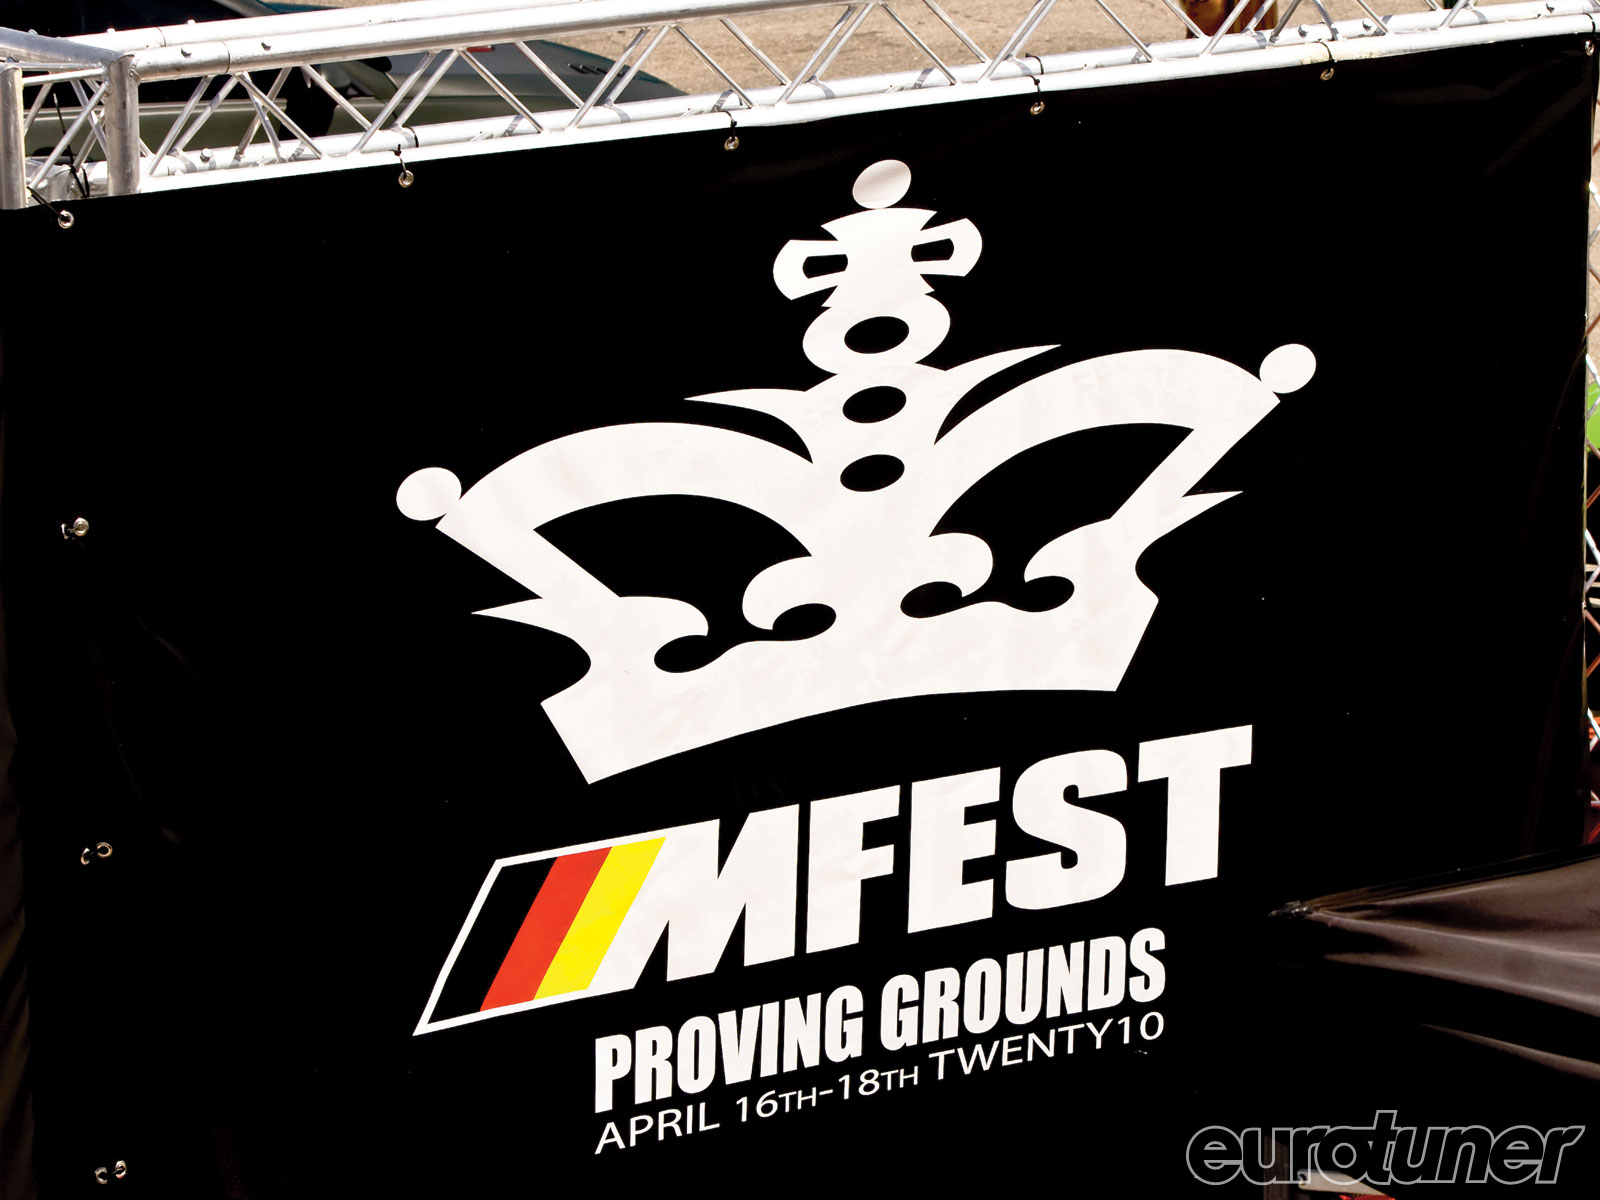 MF Fest 4 Proving Grounds